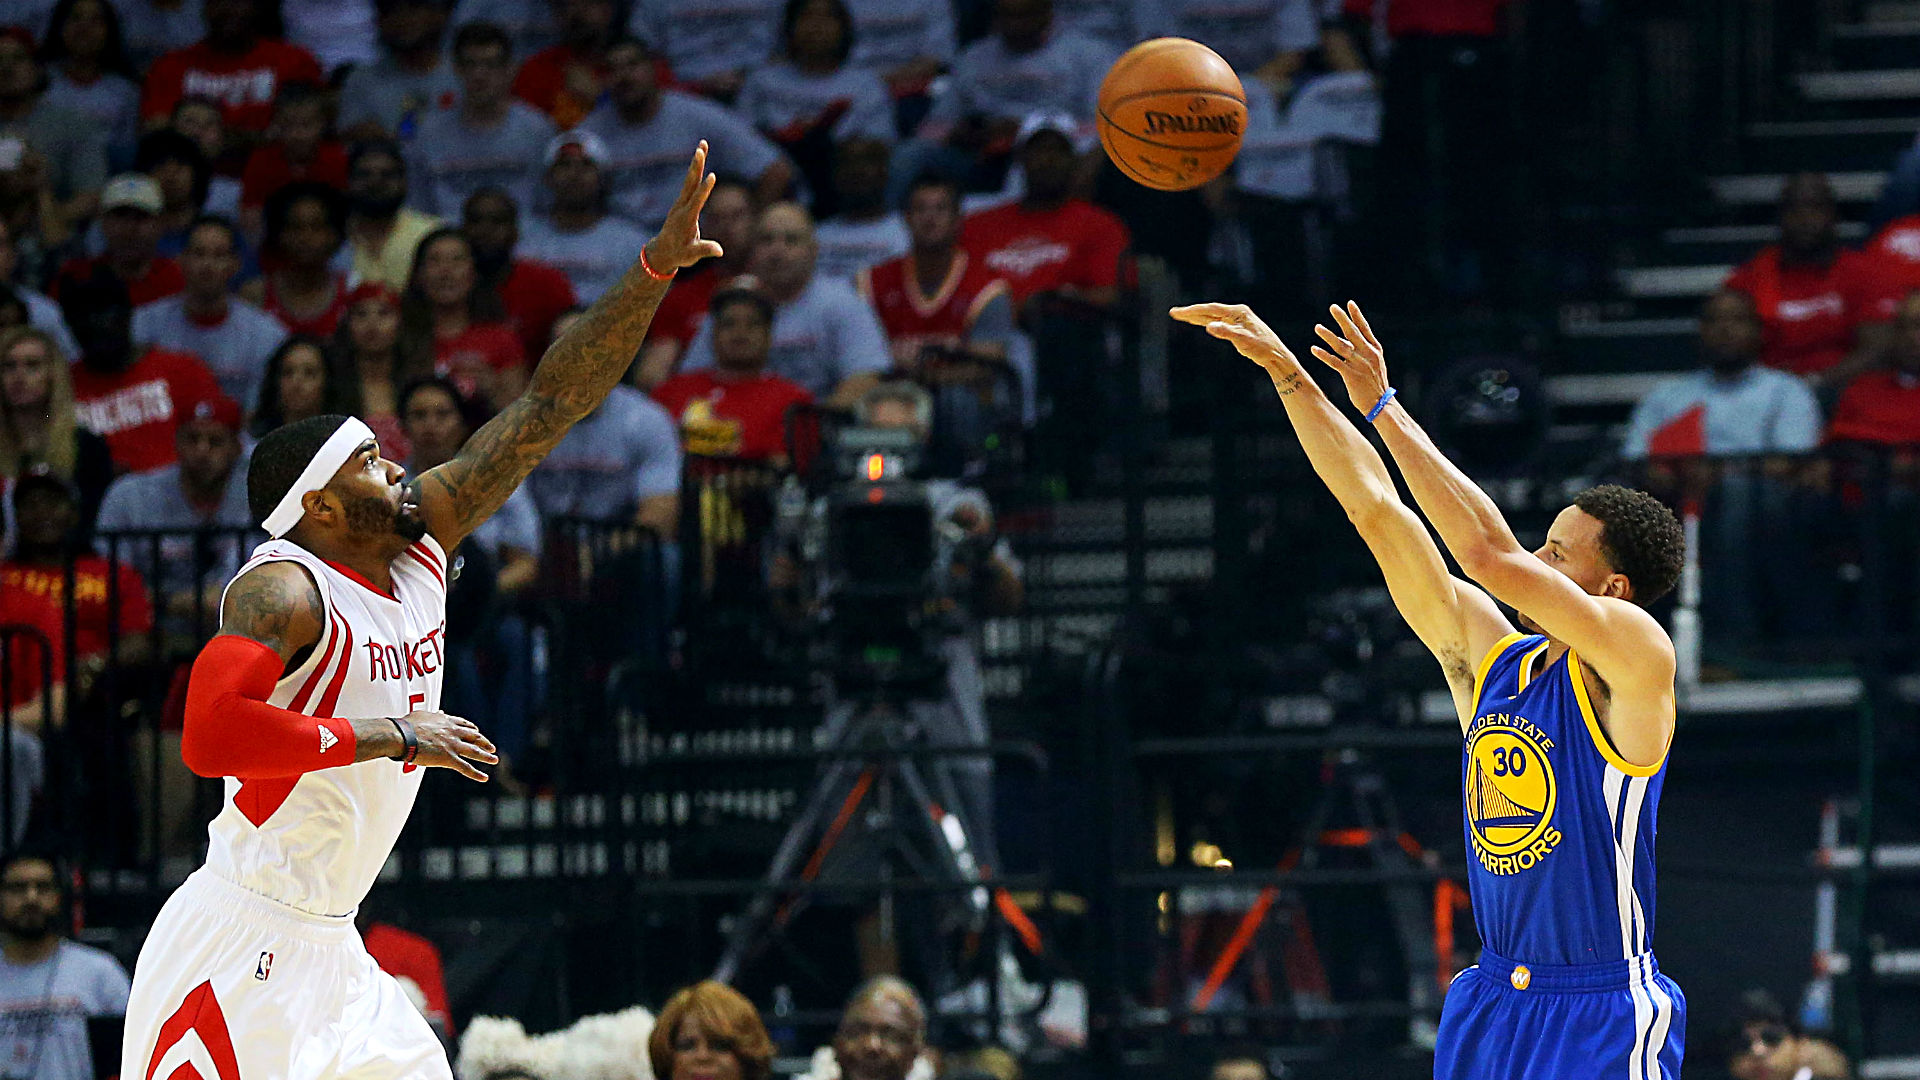 Stephen Curry's historic night highlights Warriors blowout win over Rockets